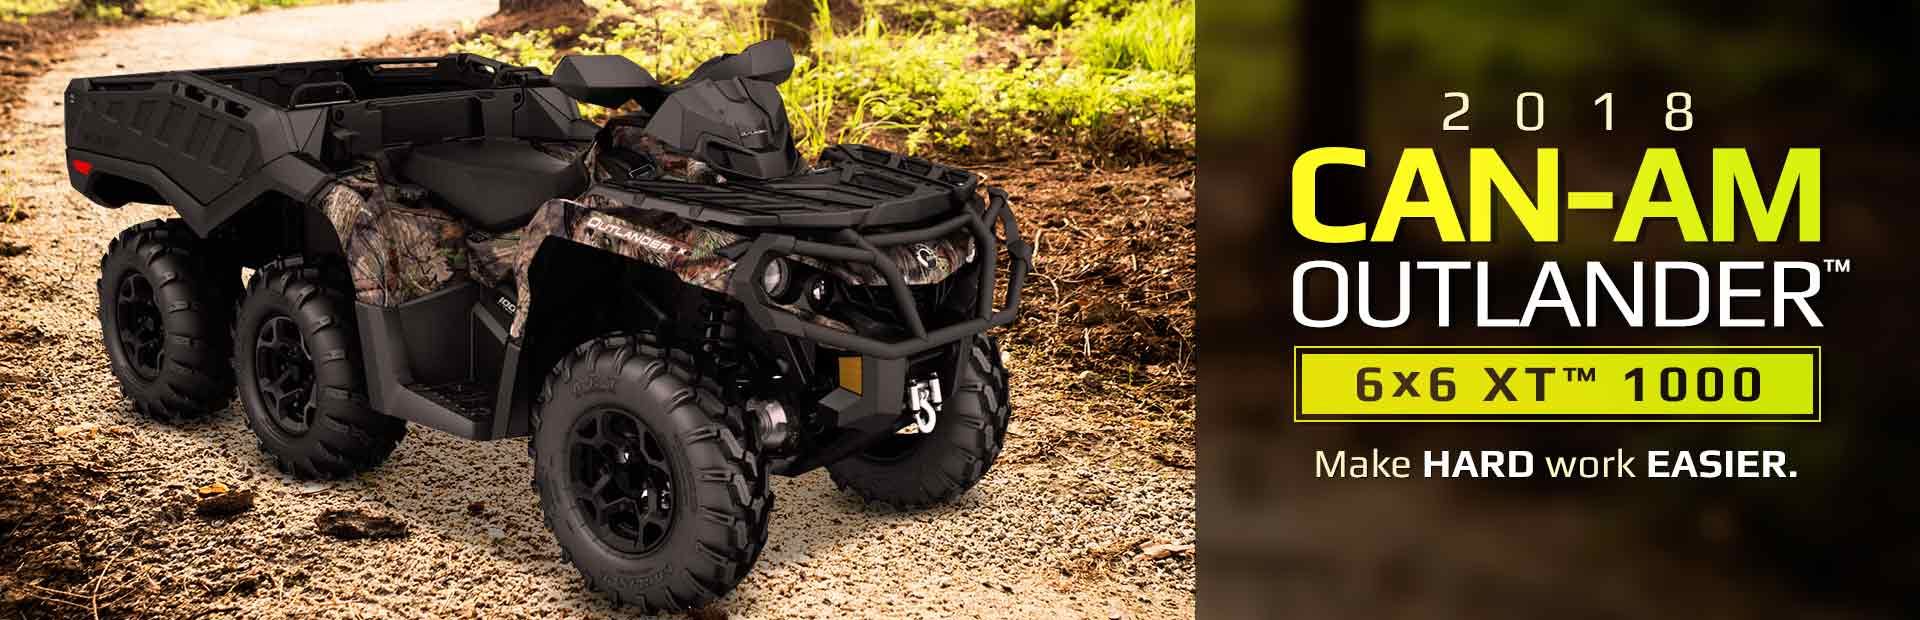 2018 Can-Am Outlander™ 6x6 XT™ 1000: Click here to view the model.